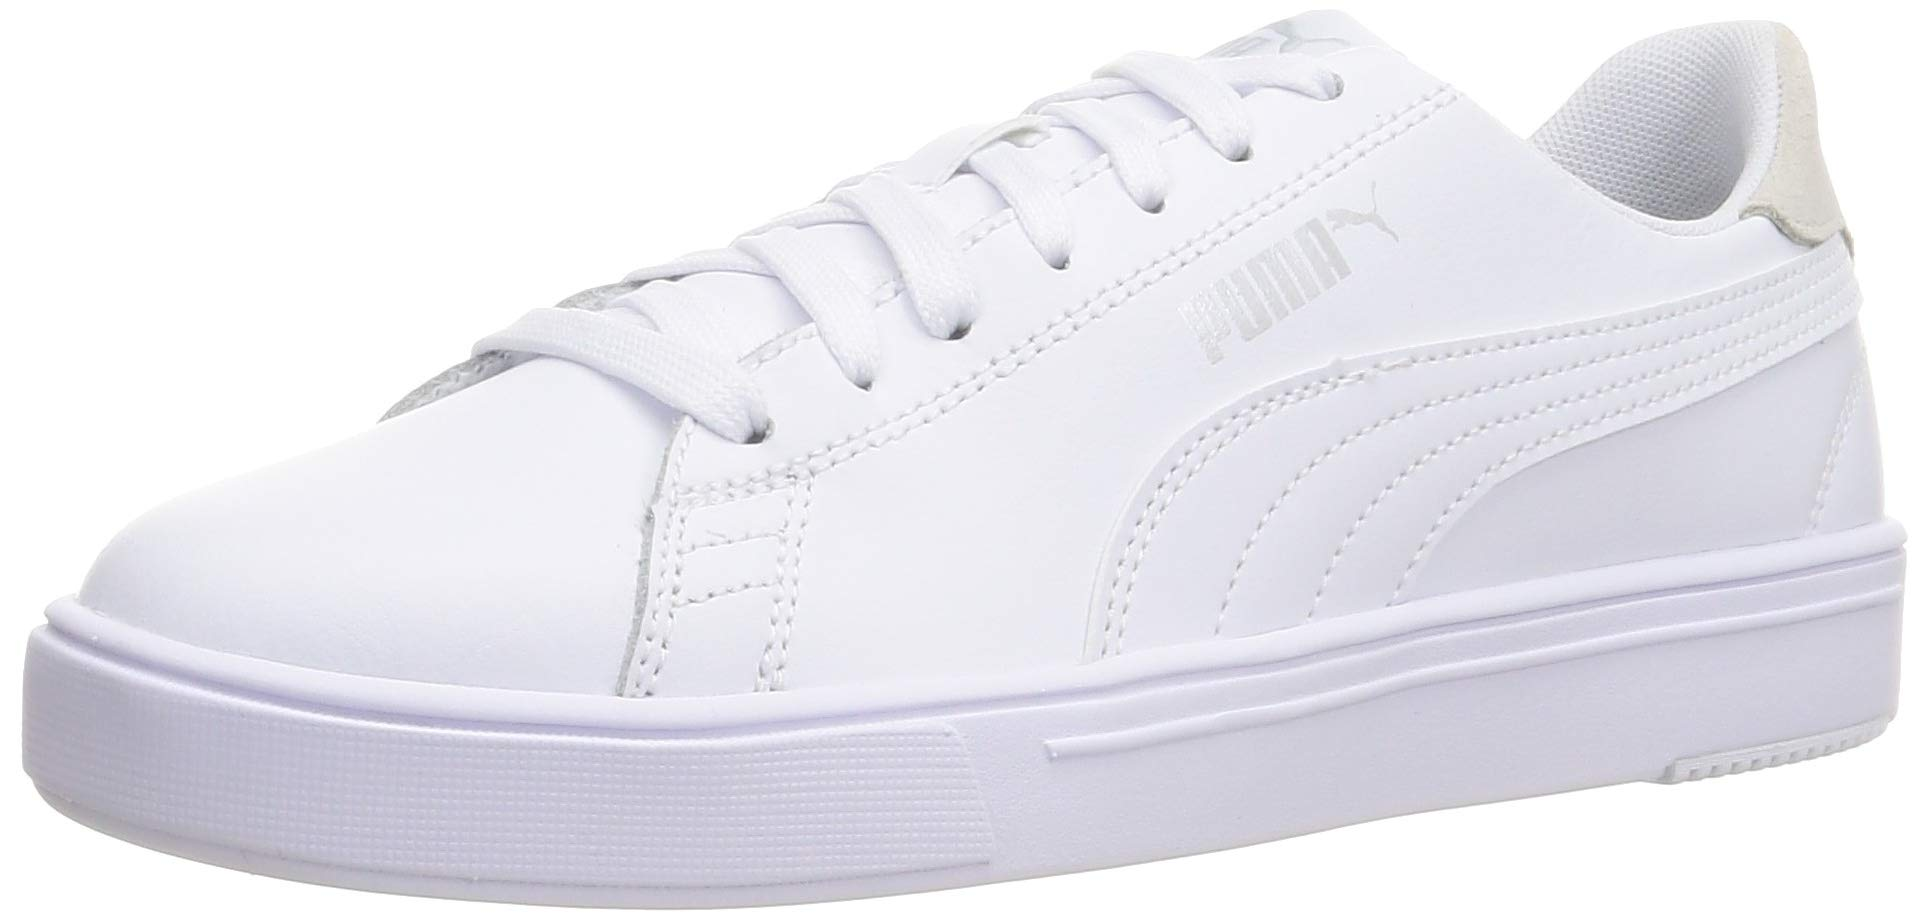 PUMA Serve Pro Lite Sneaker White-White-Silver-Gray UK 8_Adults_FR 42